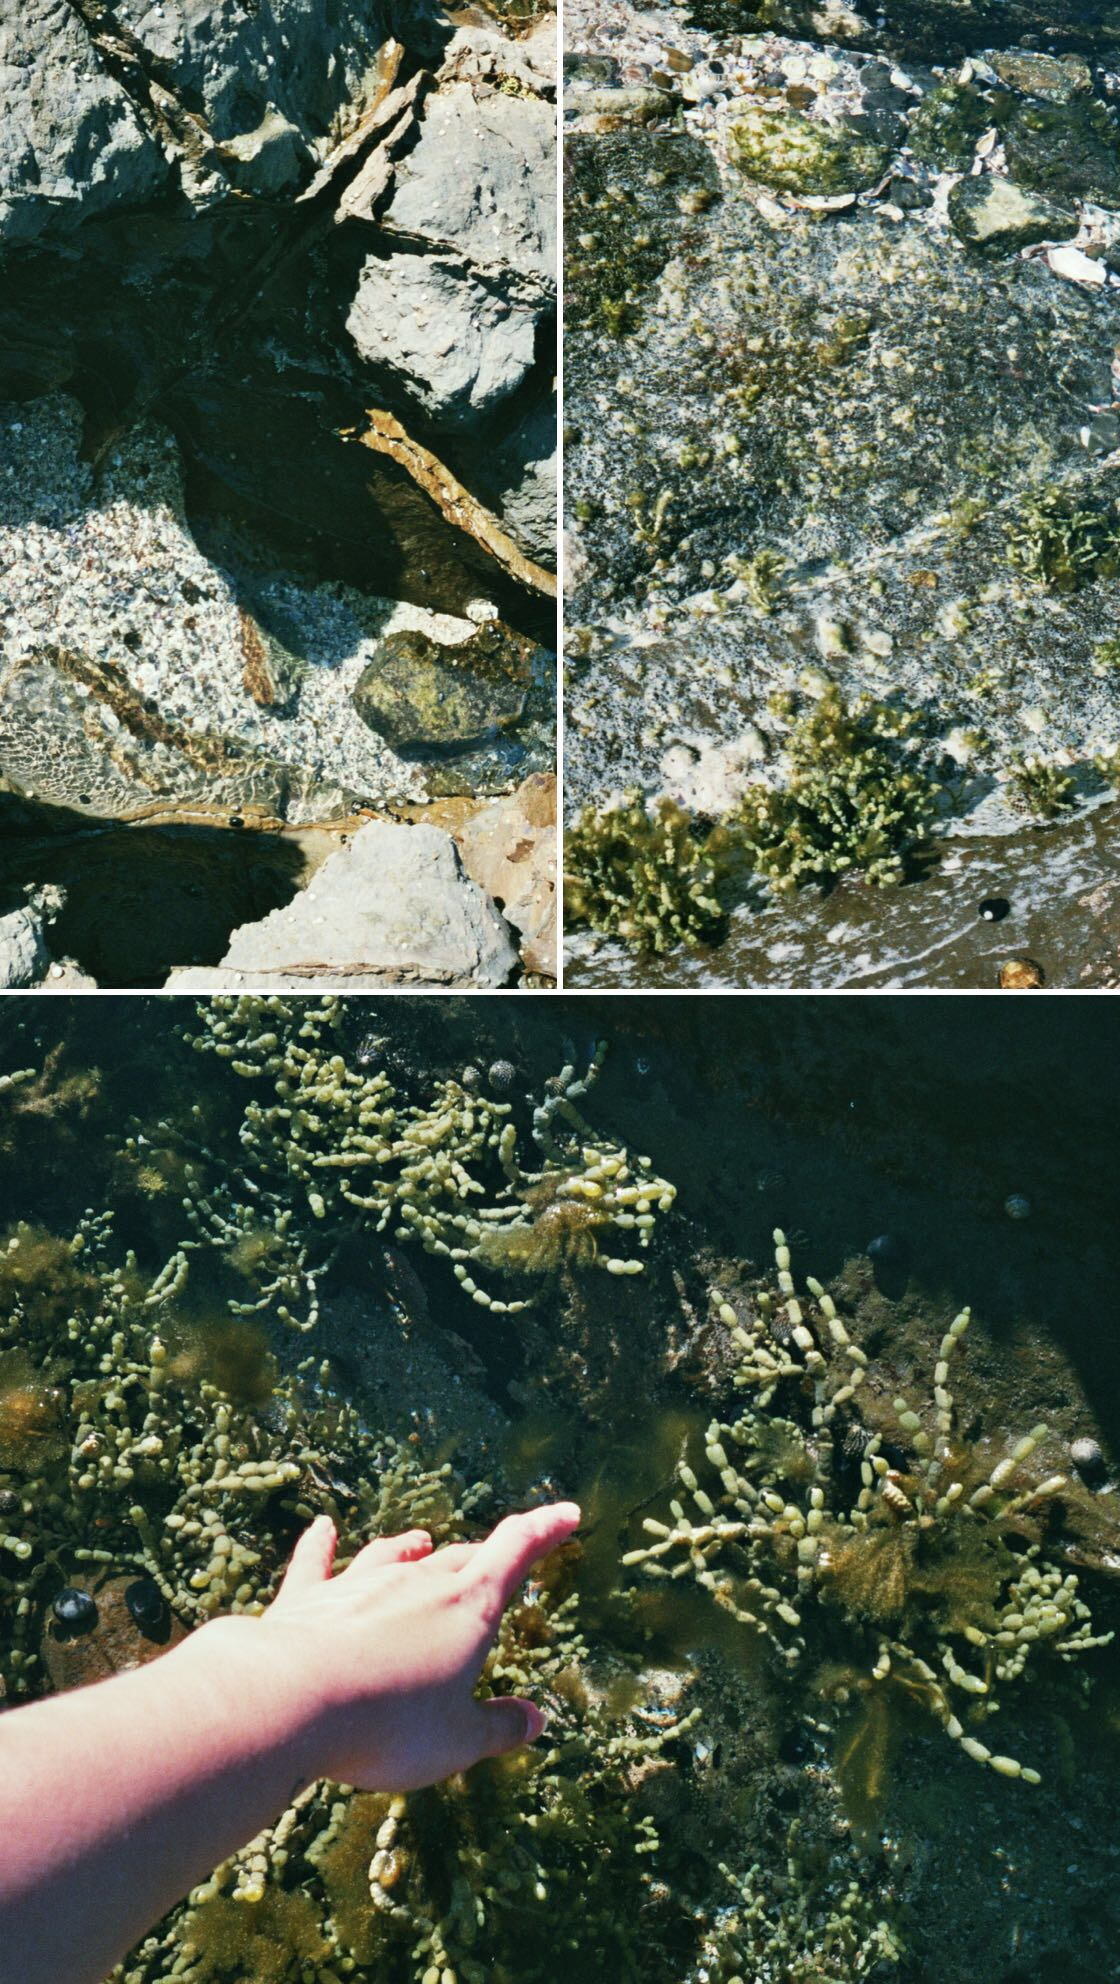 The textures and colours in the rockpools